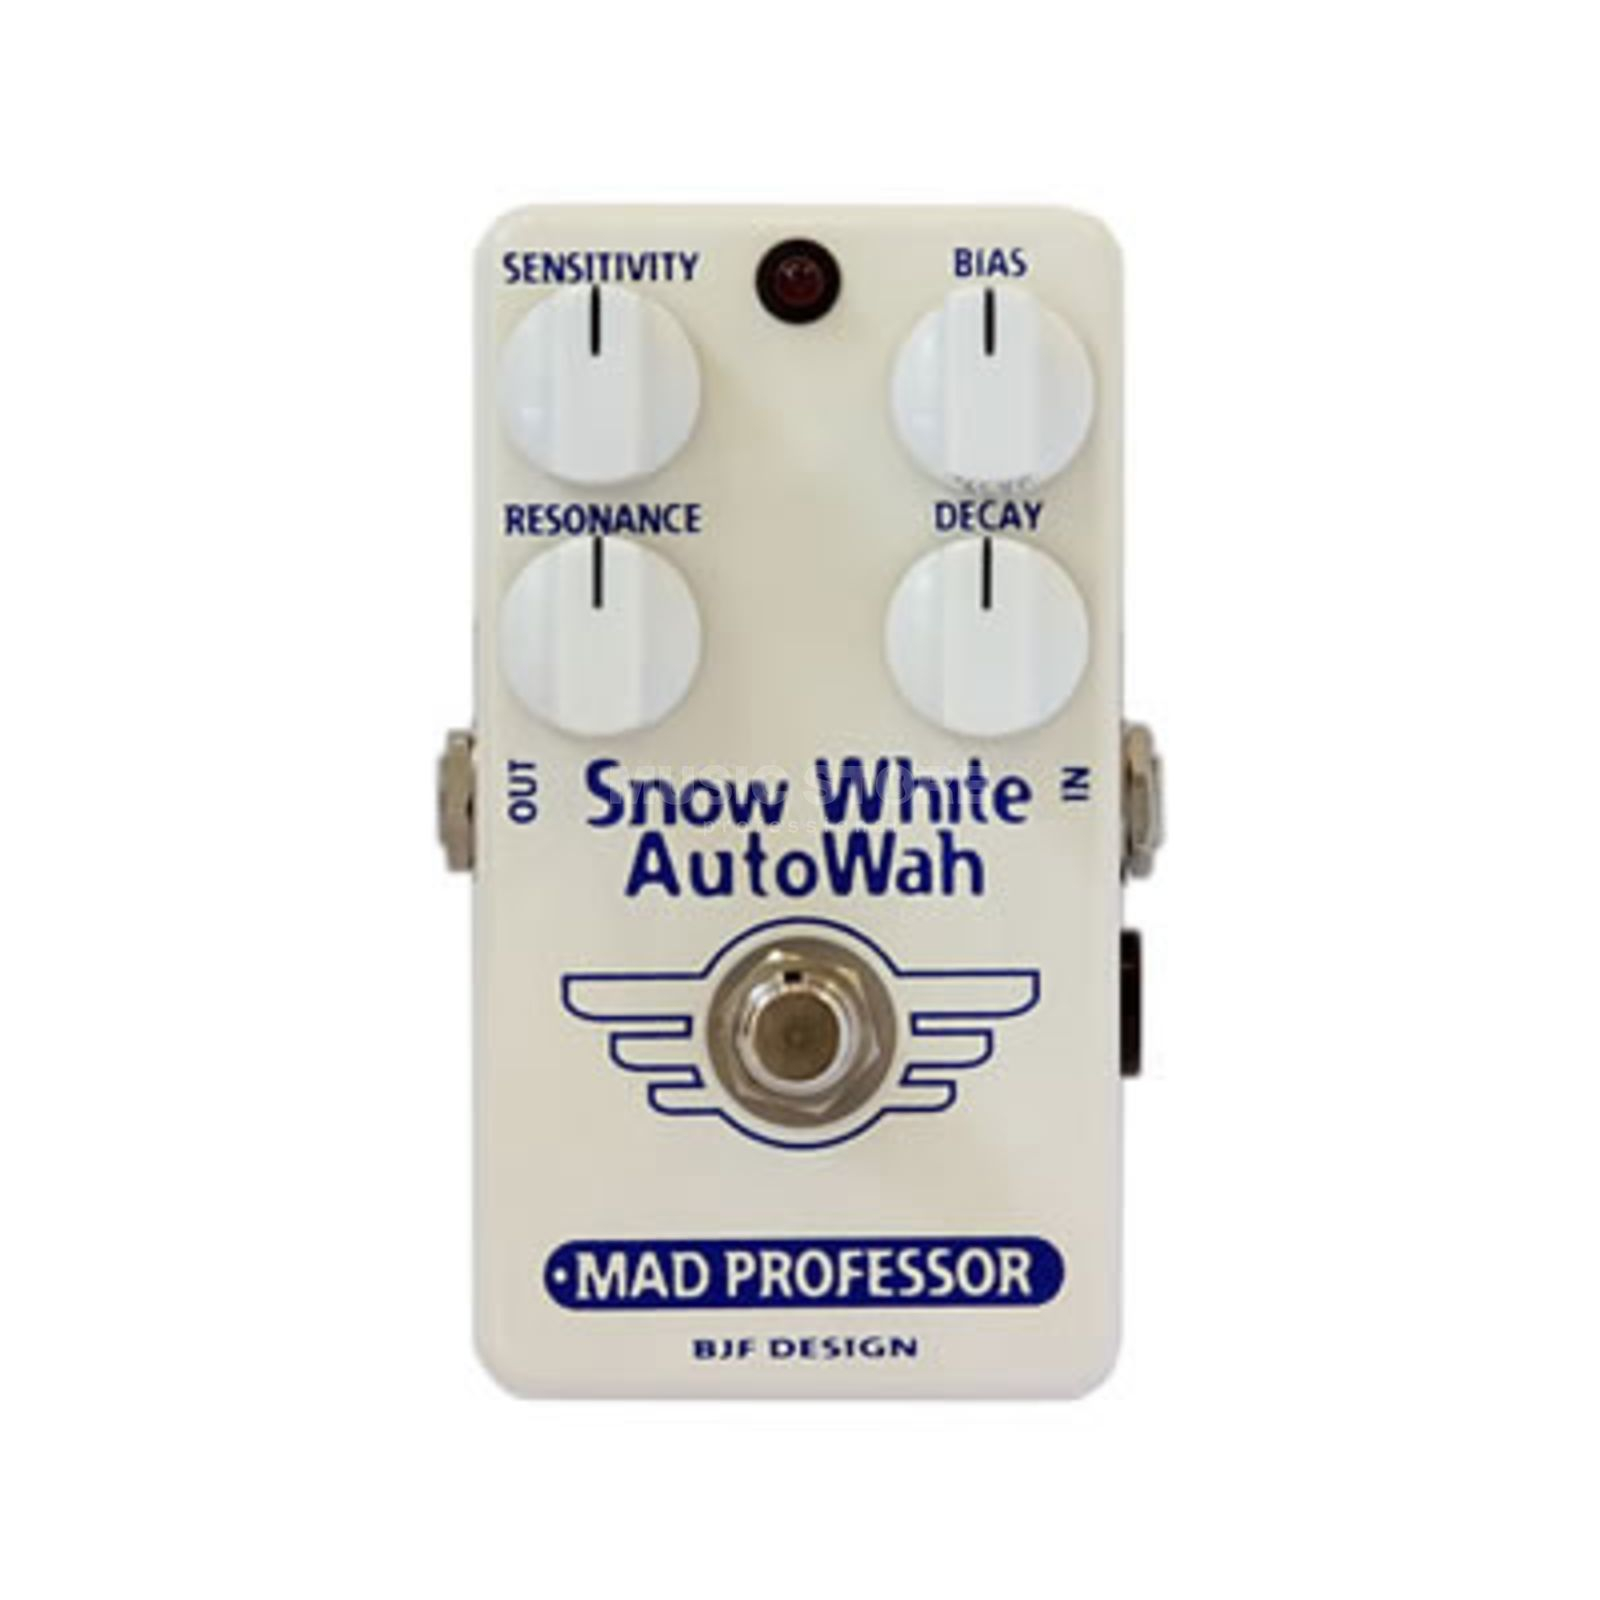 Mad Professor Snow White Auto Wah Handwired Produktbild